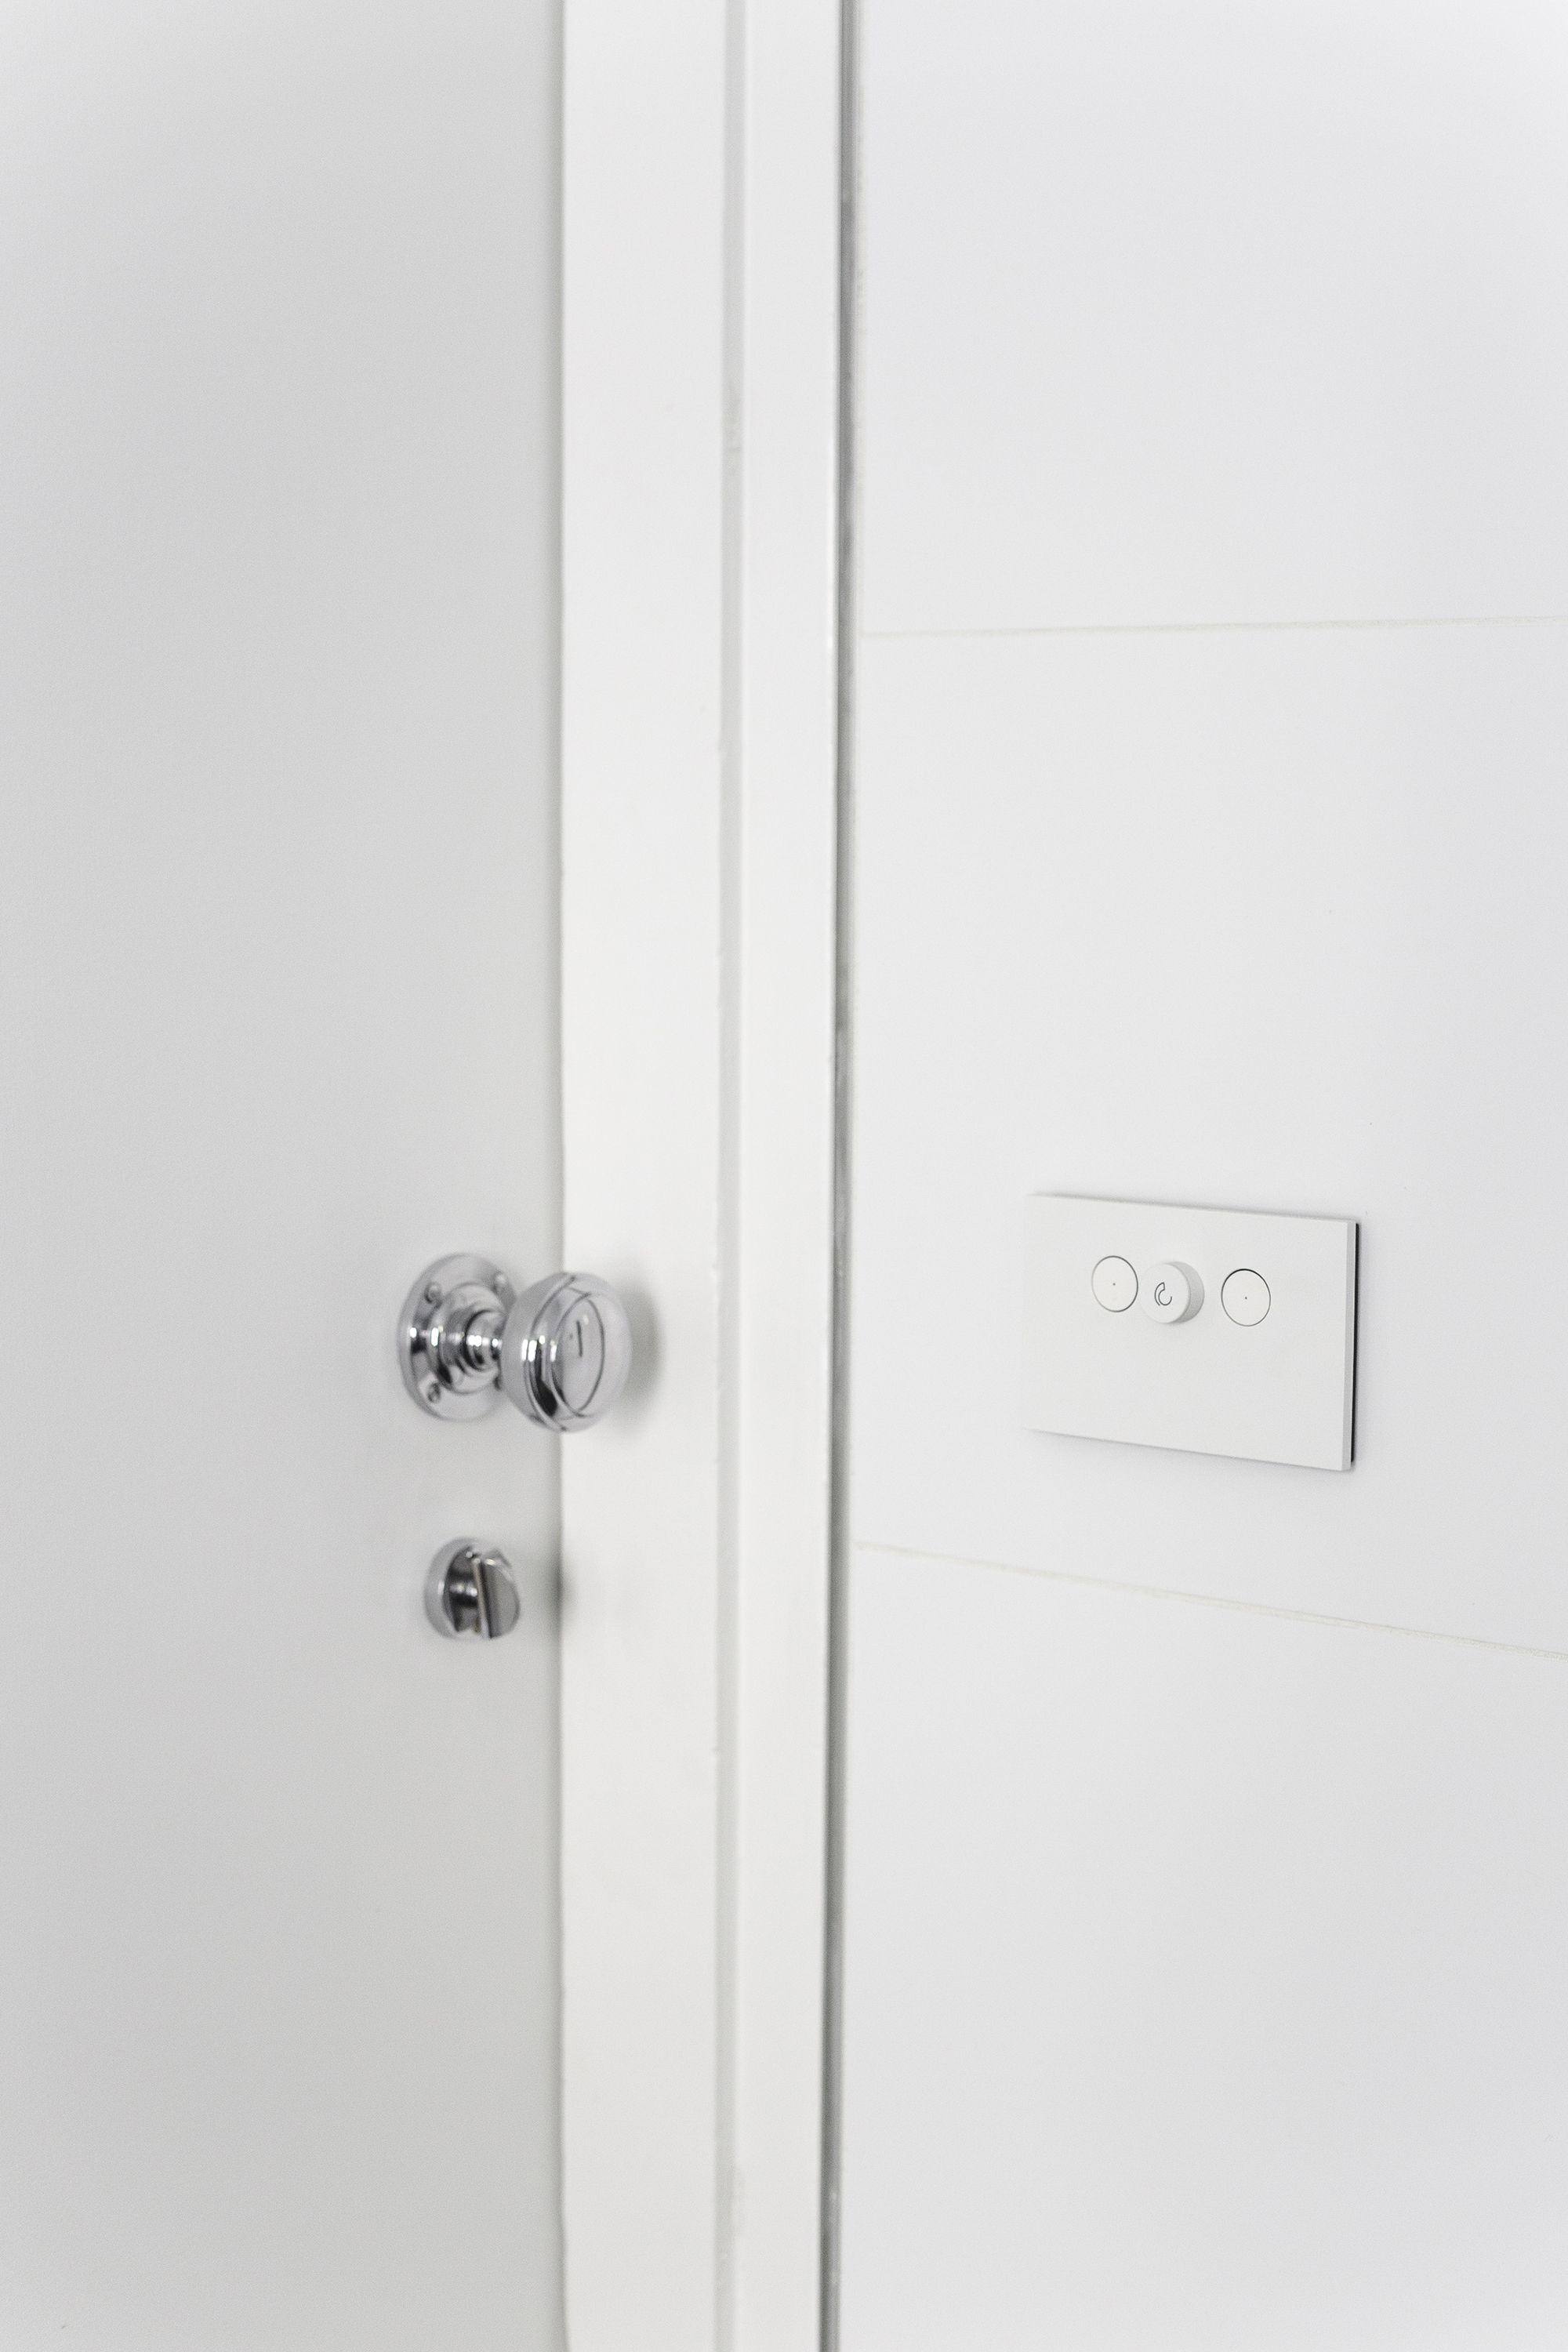 White Bathroom Door old fashioned bathroom door handles. http://www.restorationonline